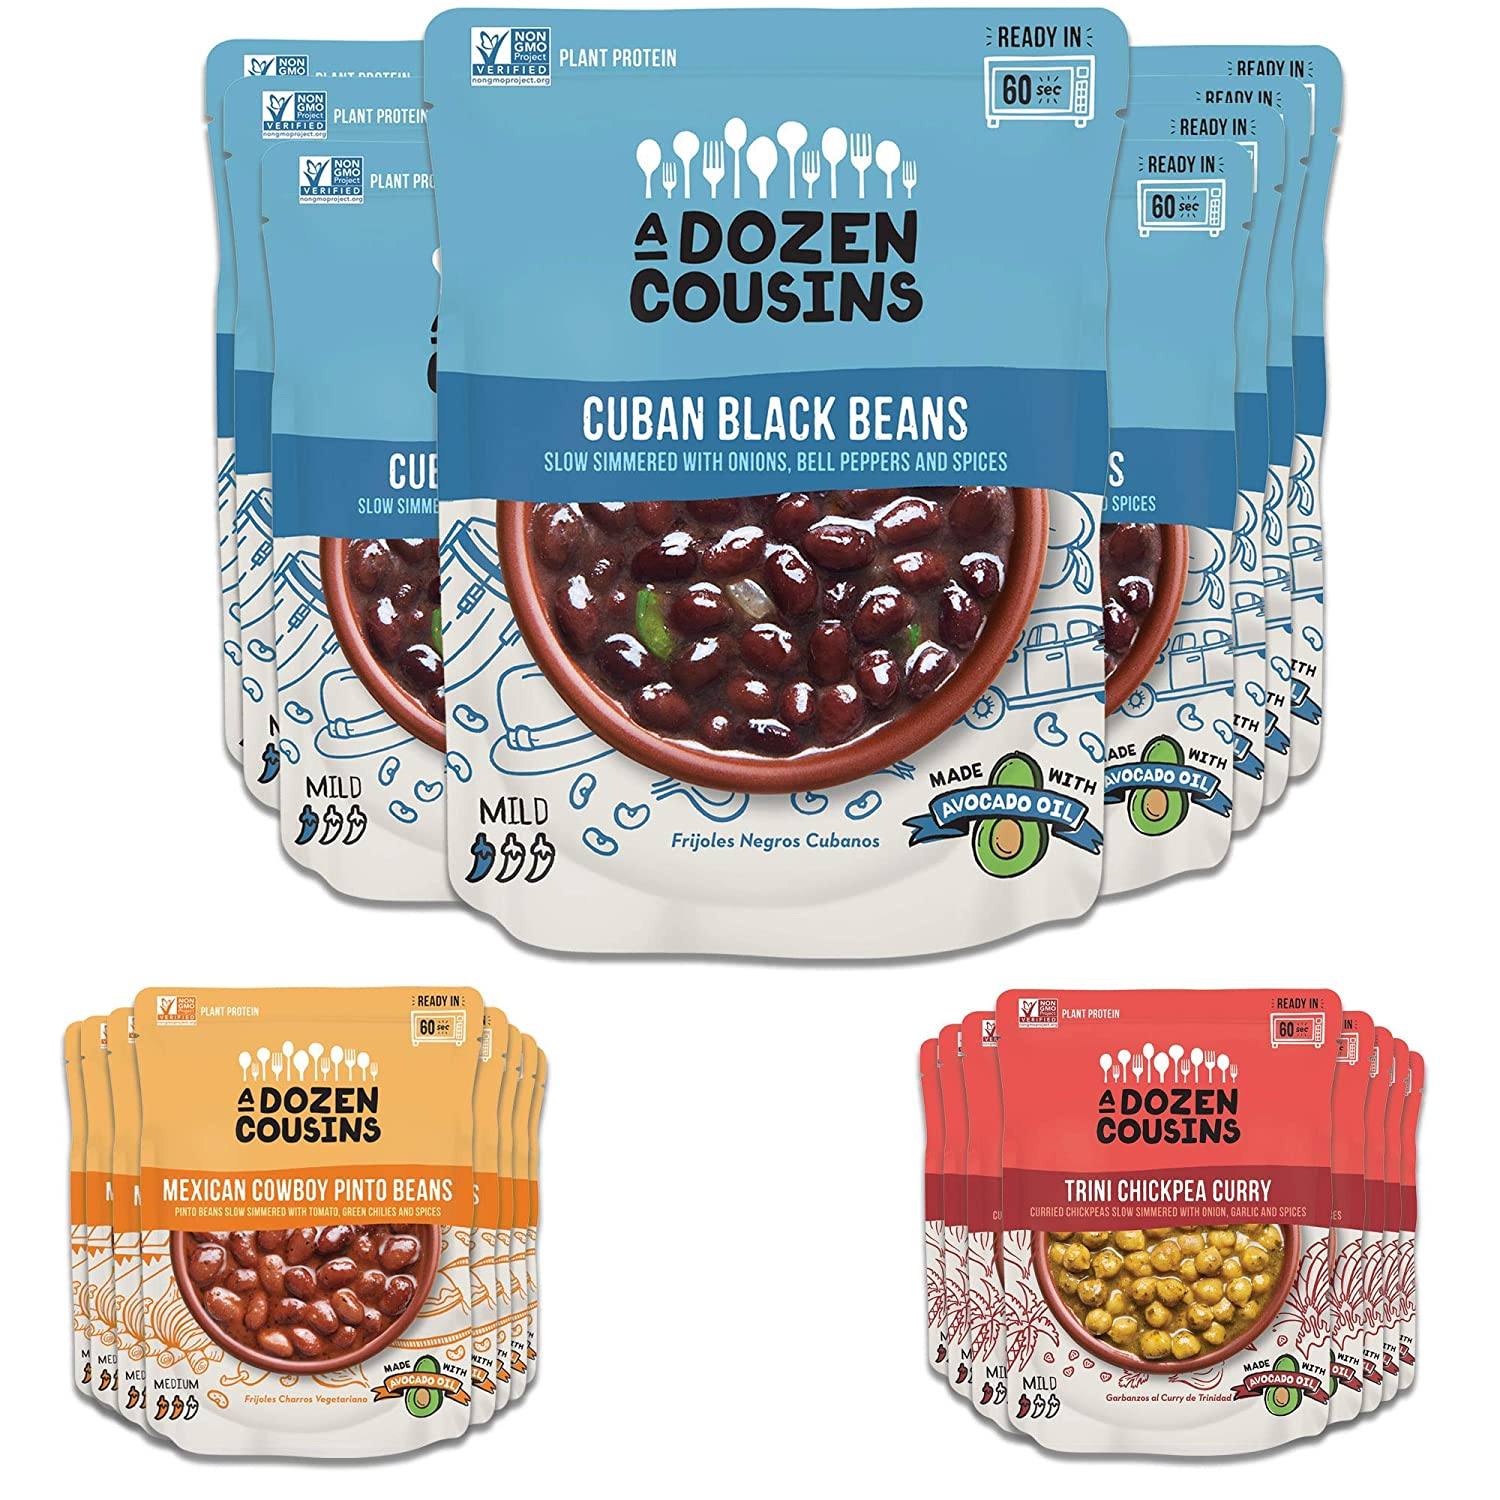 A Dozen Cousins Cuban Black Beans, Mexican Cowboy Beans, Trini Chickpea Curry - Ready to Eat, Vegan and Non-GMO Seasoned Beans Made with Avocado Oil (24-pack)